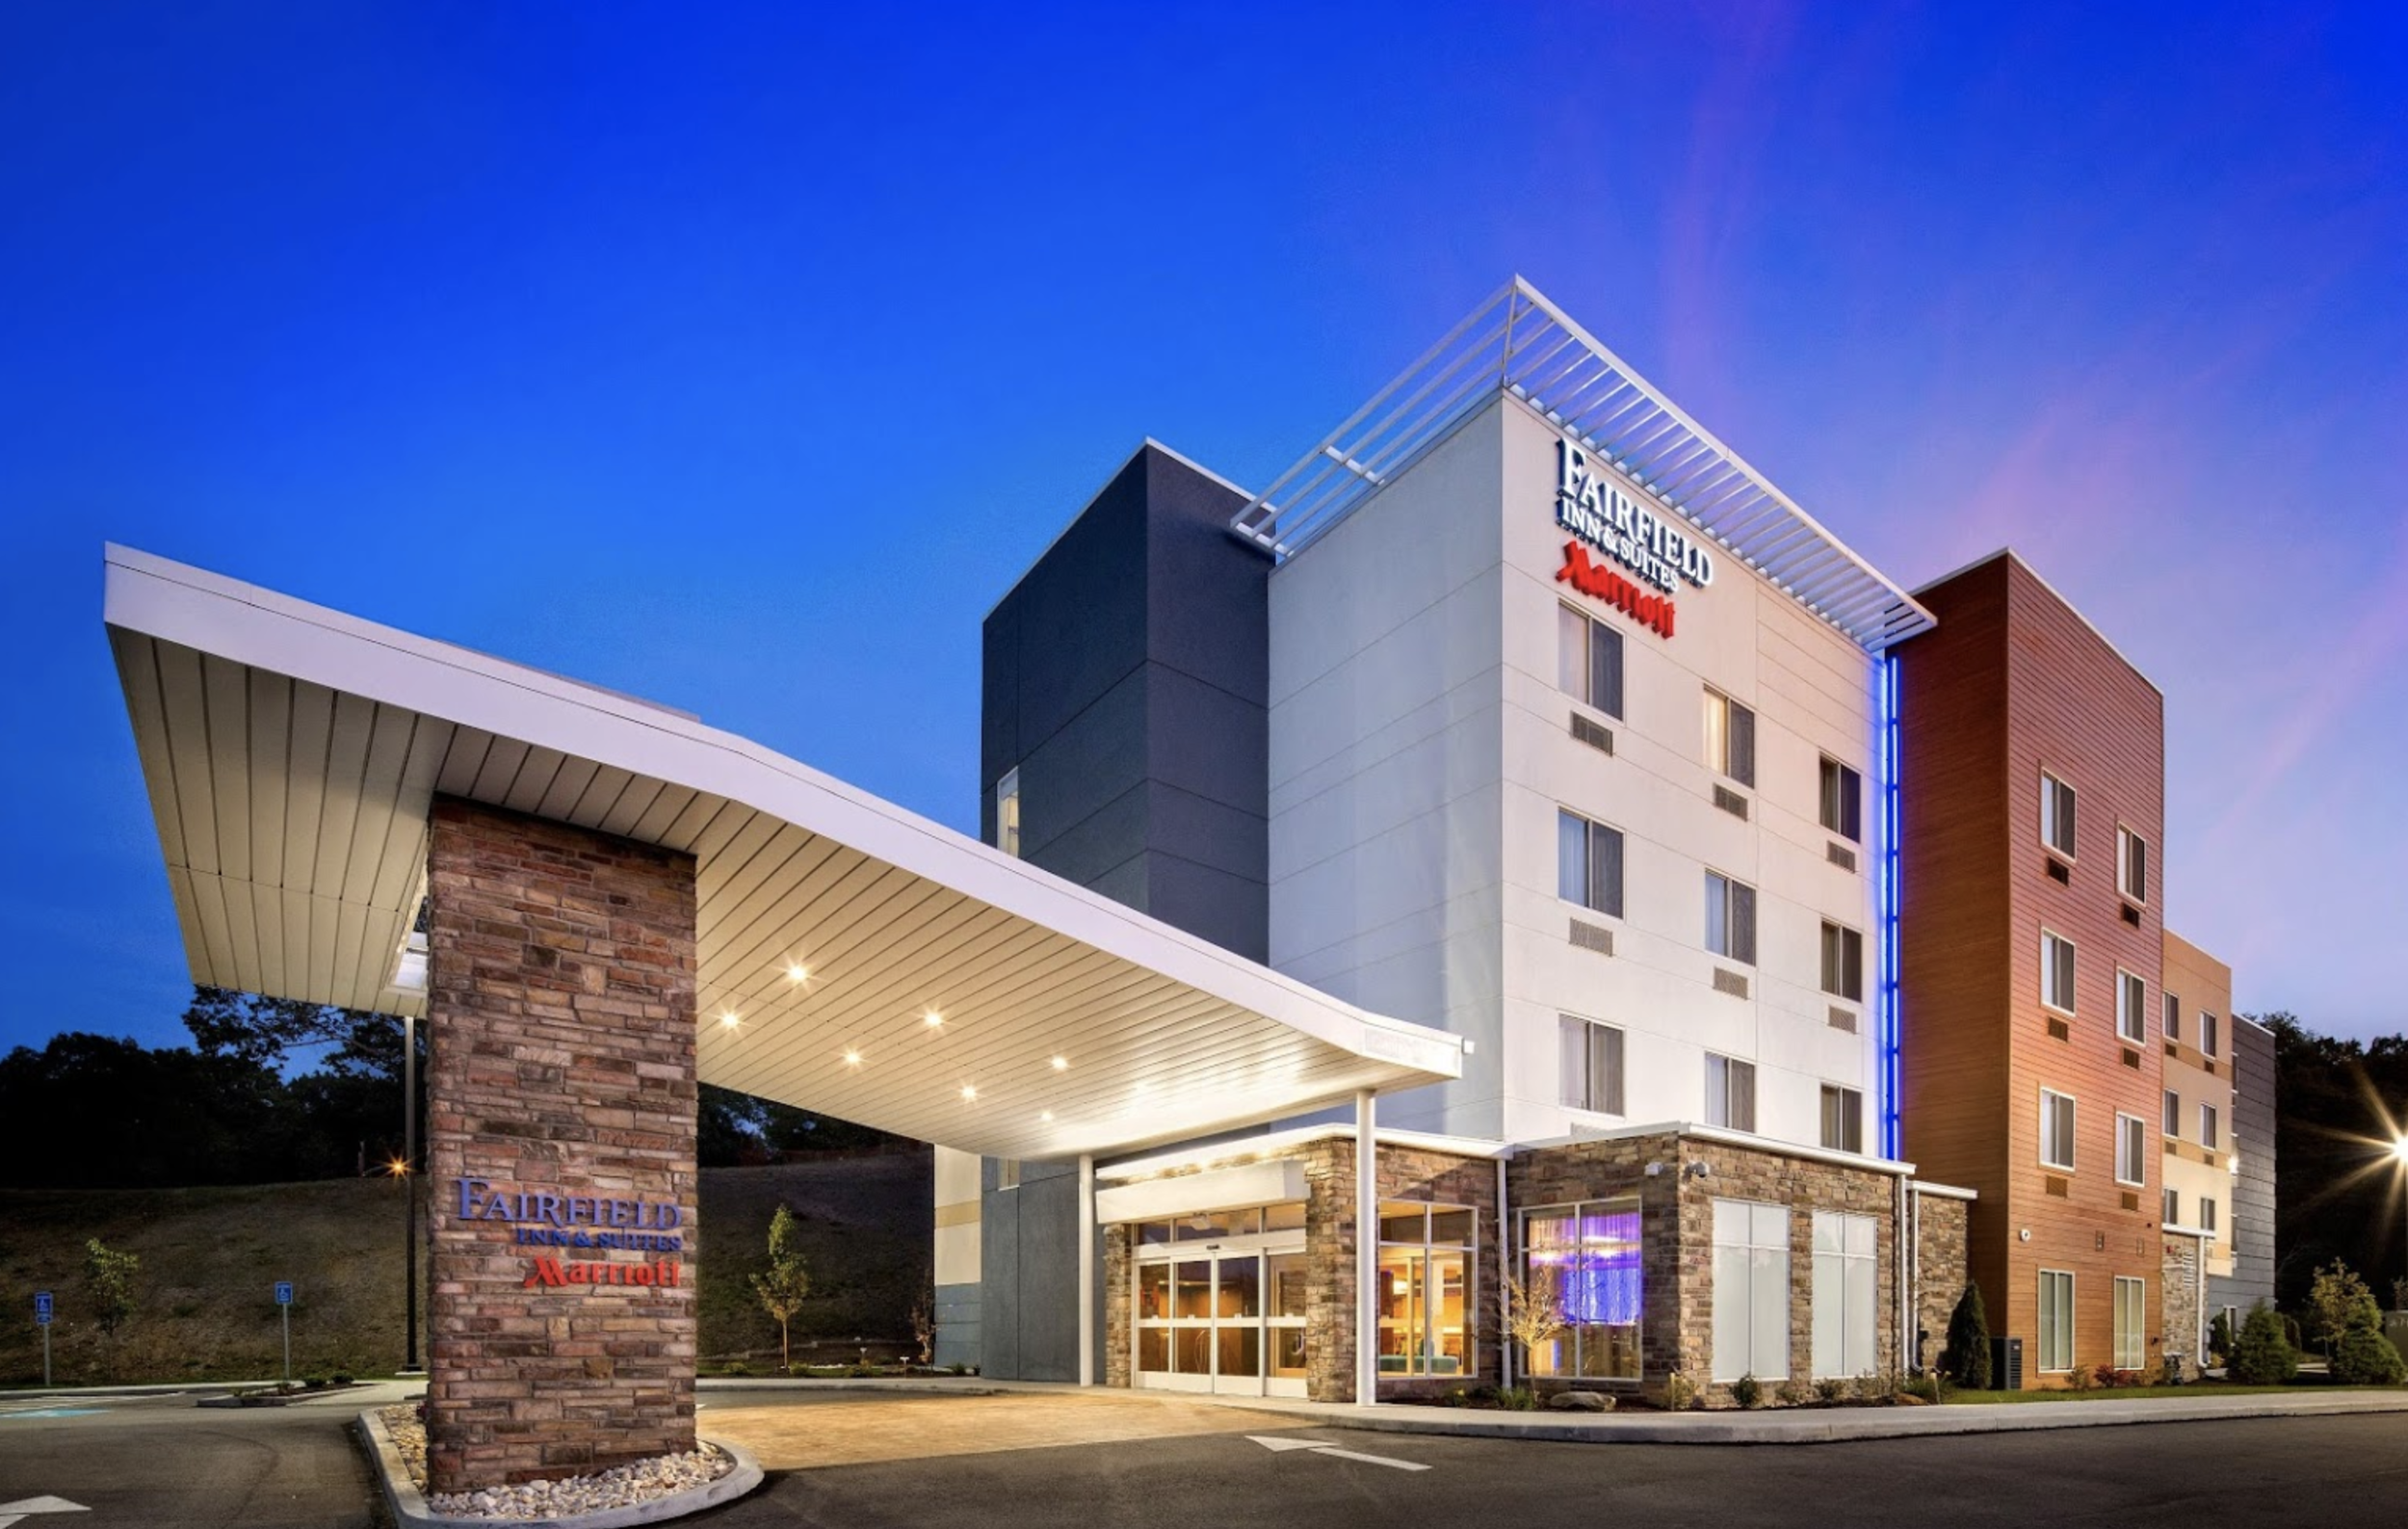 Fairfield Inn & Suites by Marriott - 1438 Brodhead Road, Monaca, PA 15061724-888-2696 • Book by August 25Reference: CCBC Presidential Inauguration$109 per nightBOOK A ROOM HERE